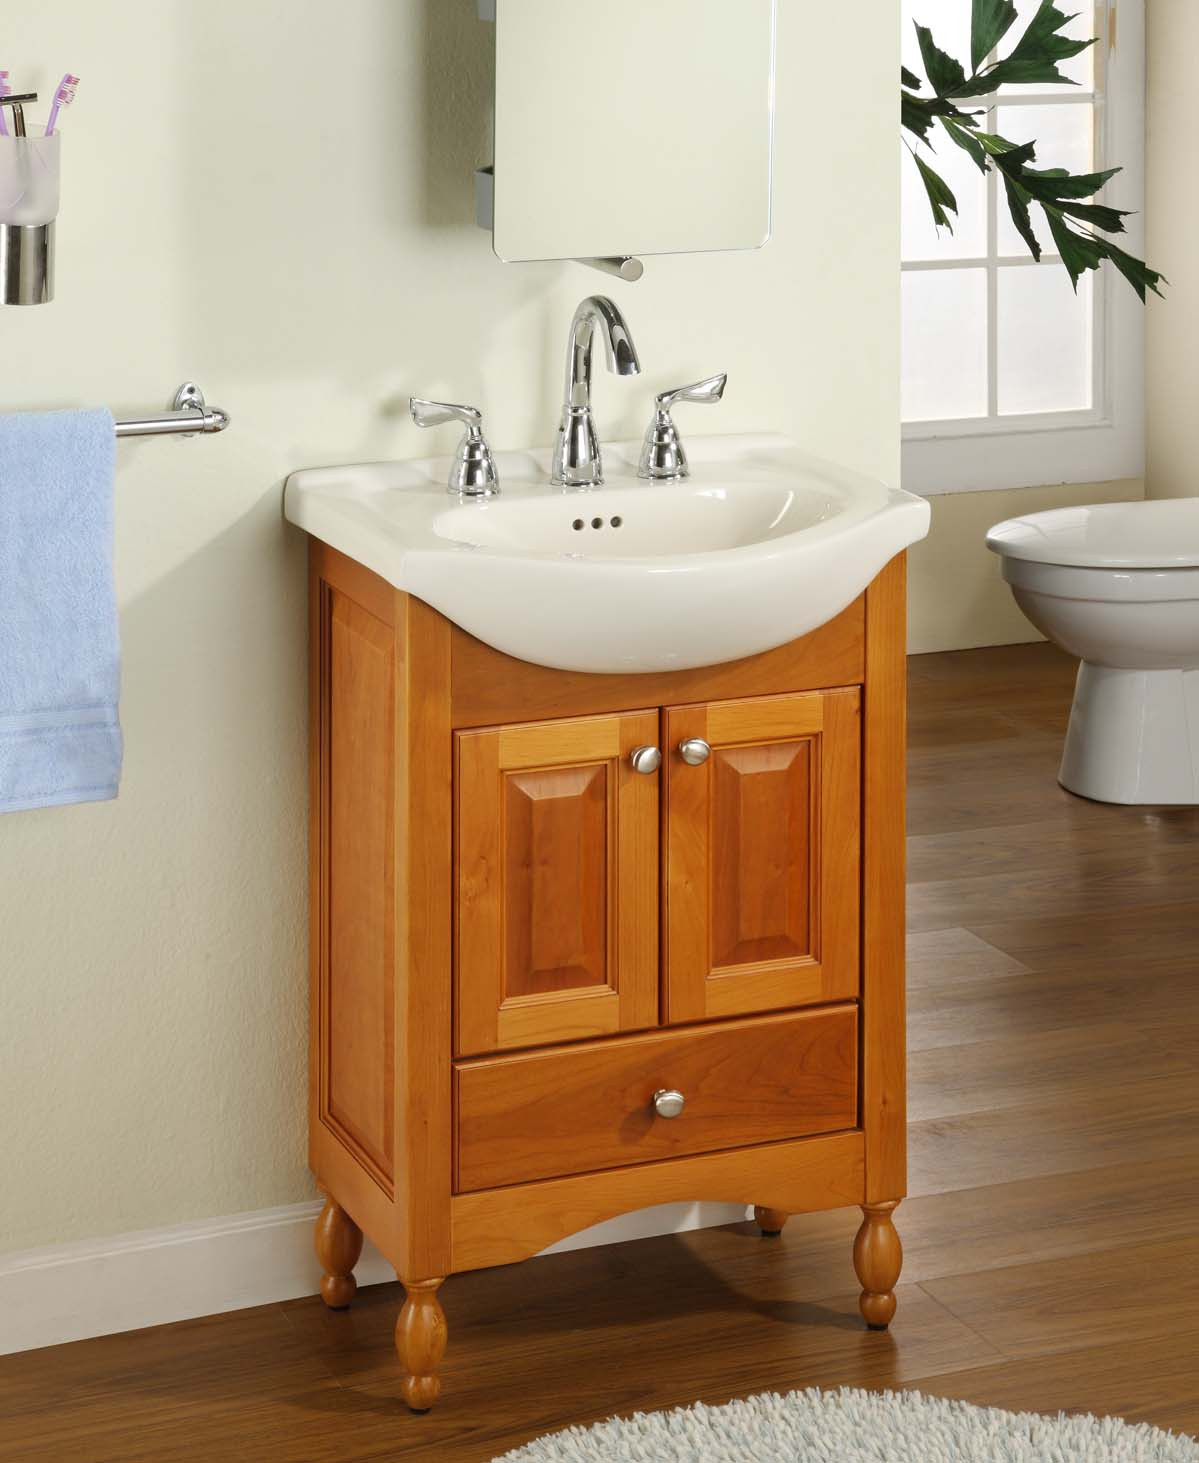 Lowes 24 Bathroom Vanity  Bathroom Simple Bathroom Vanity Lowes Design To Fit Every